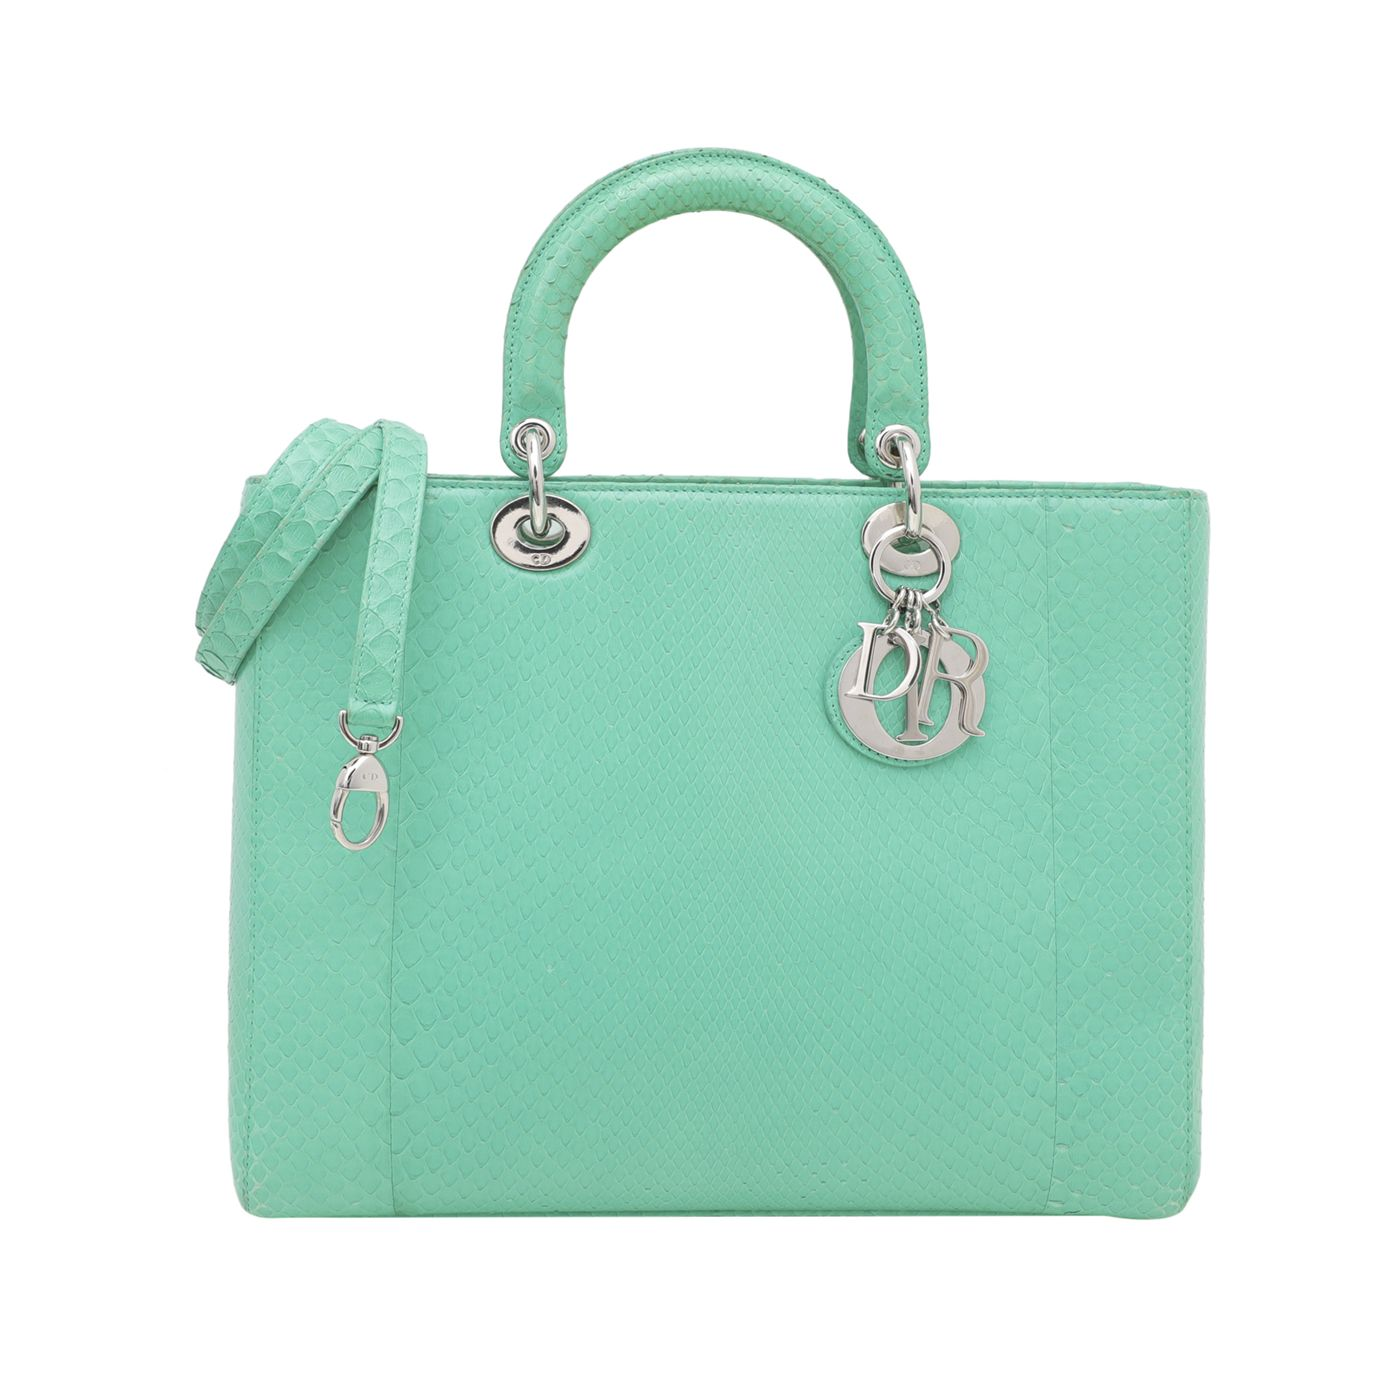 Christian Dior Green Python Lady Dior Large Bag